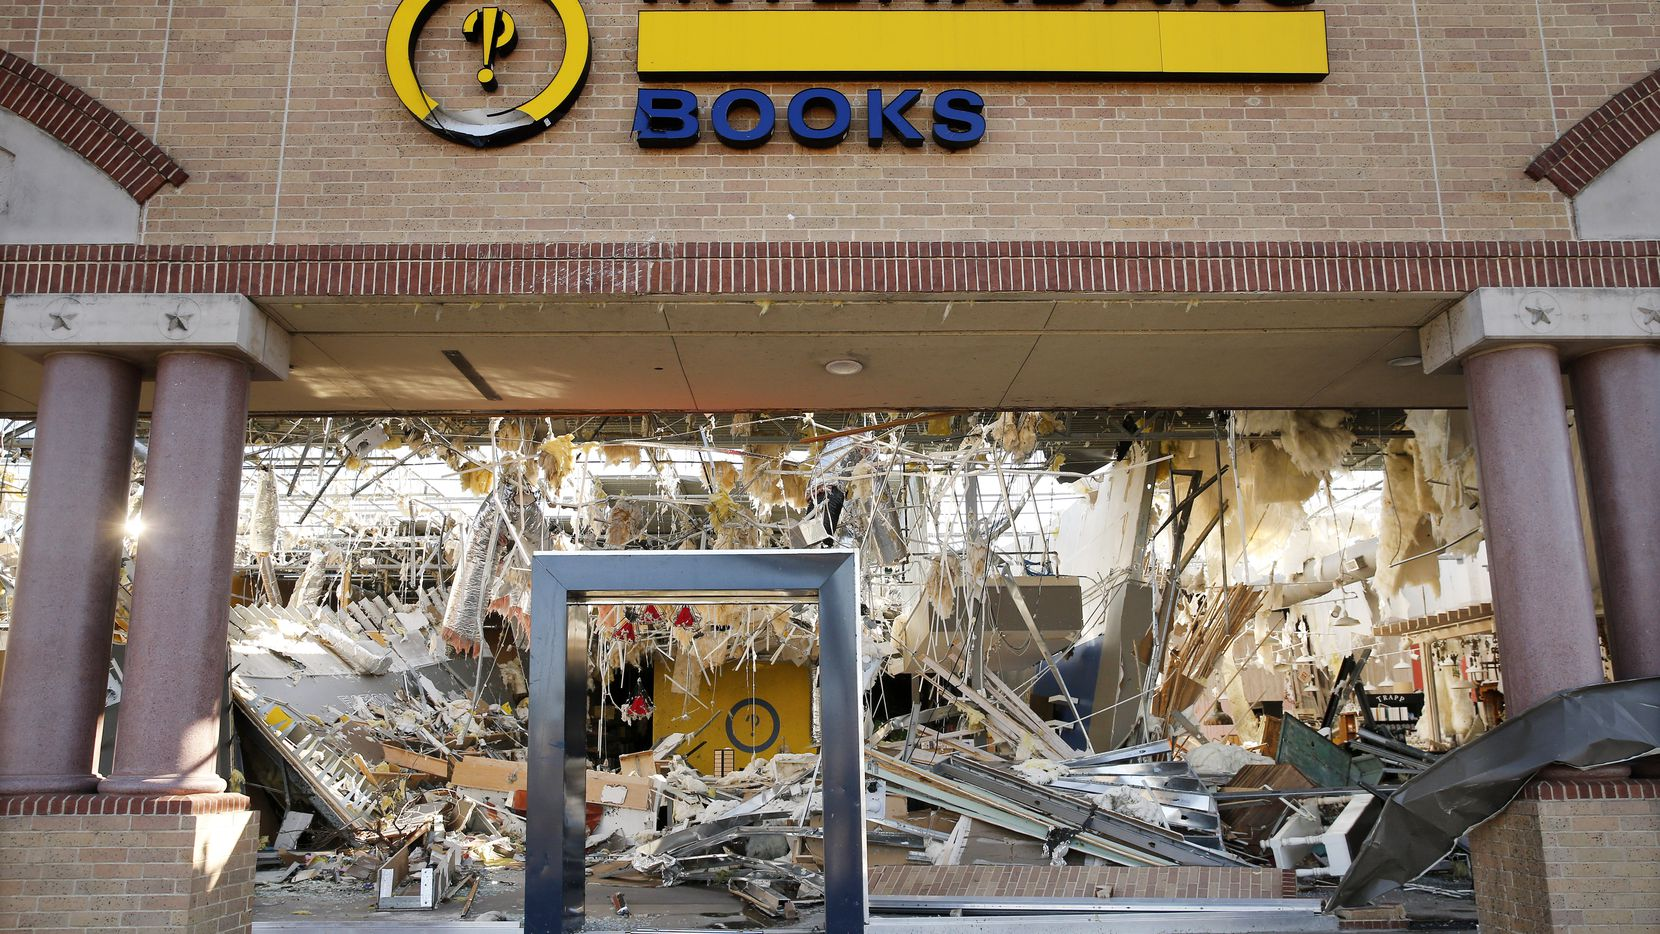 The interior of the Interabang Books store was demolished by a tornado in the Preston Royal shopping center in Dallas, Monday, October 21, 2019.